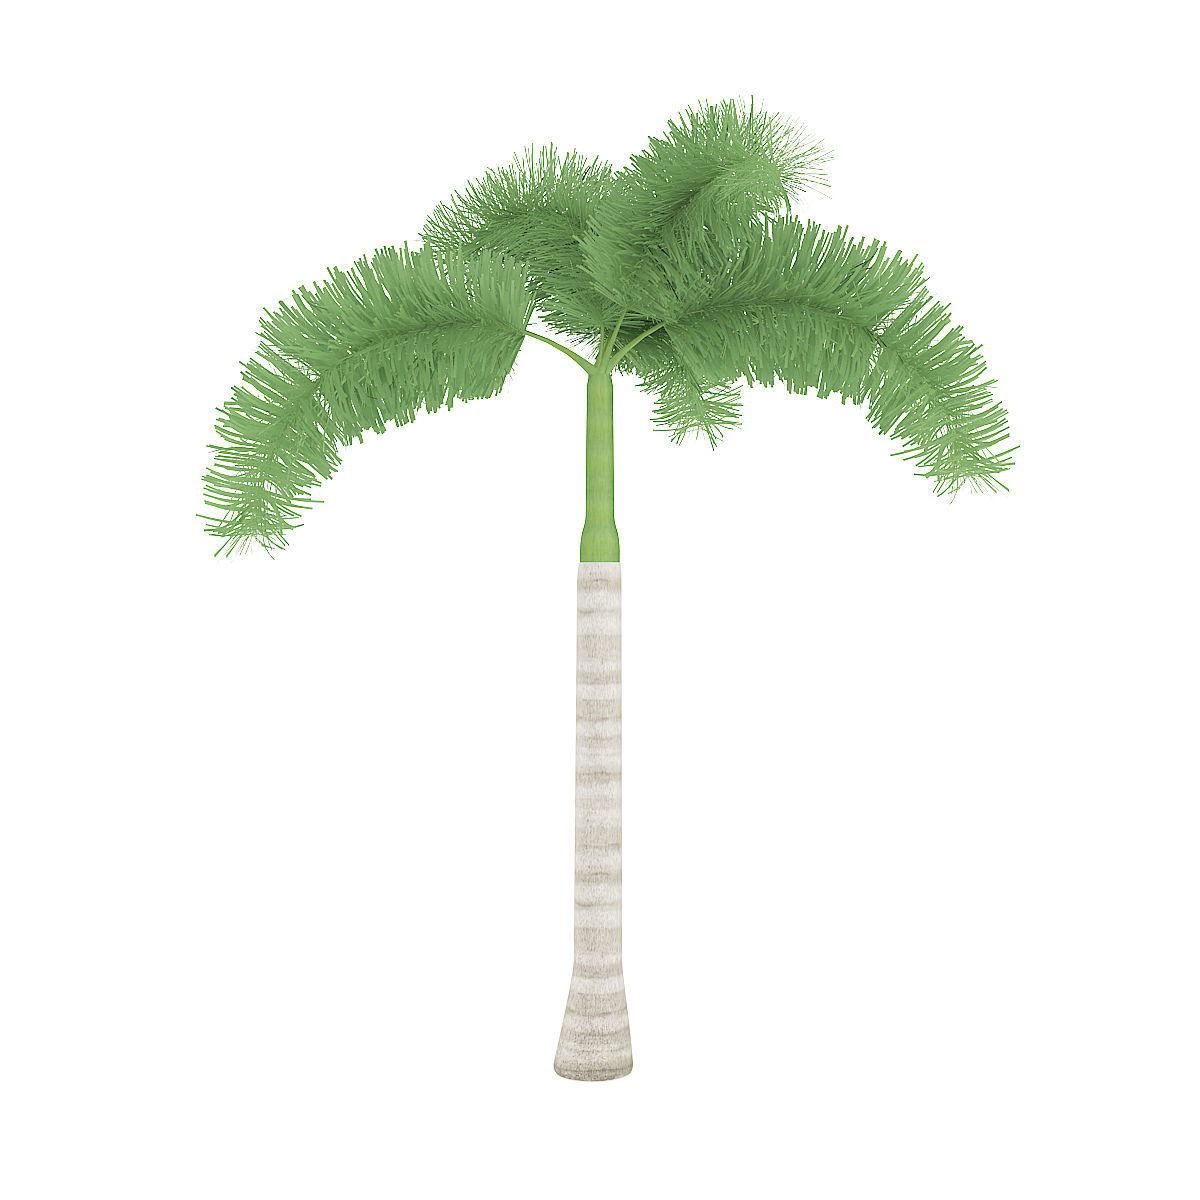 Fullsize Of Foxtail Palm Tree